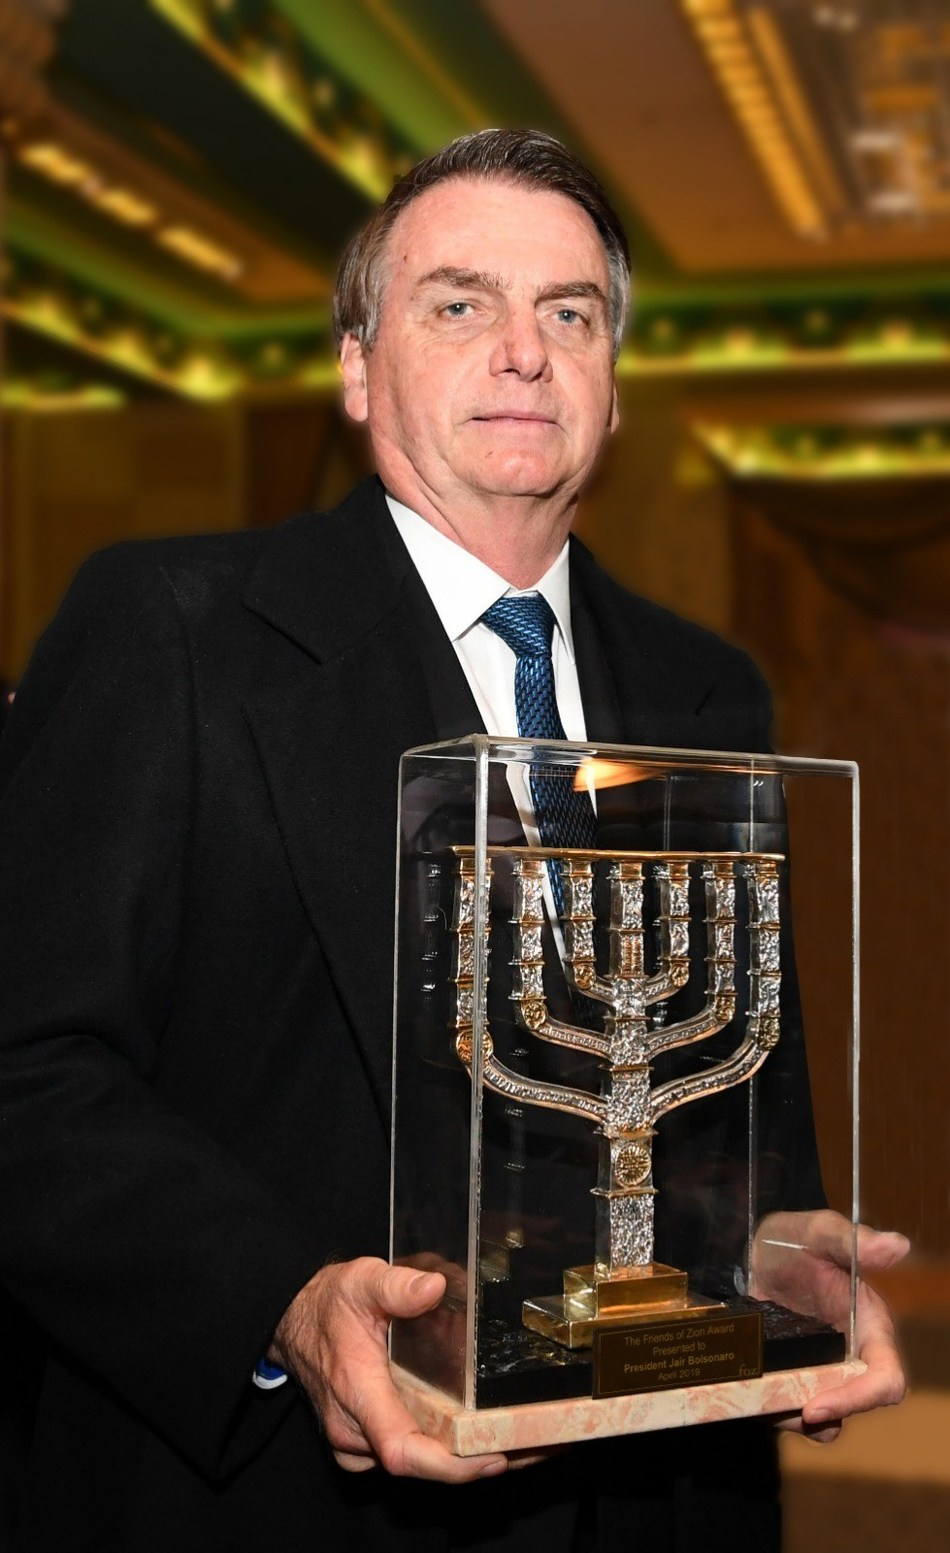 Brazilian President Bolsonaro Receives Friends of Zion Award, Photo Credit: Peter Halmagyi